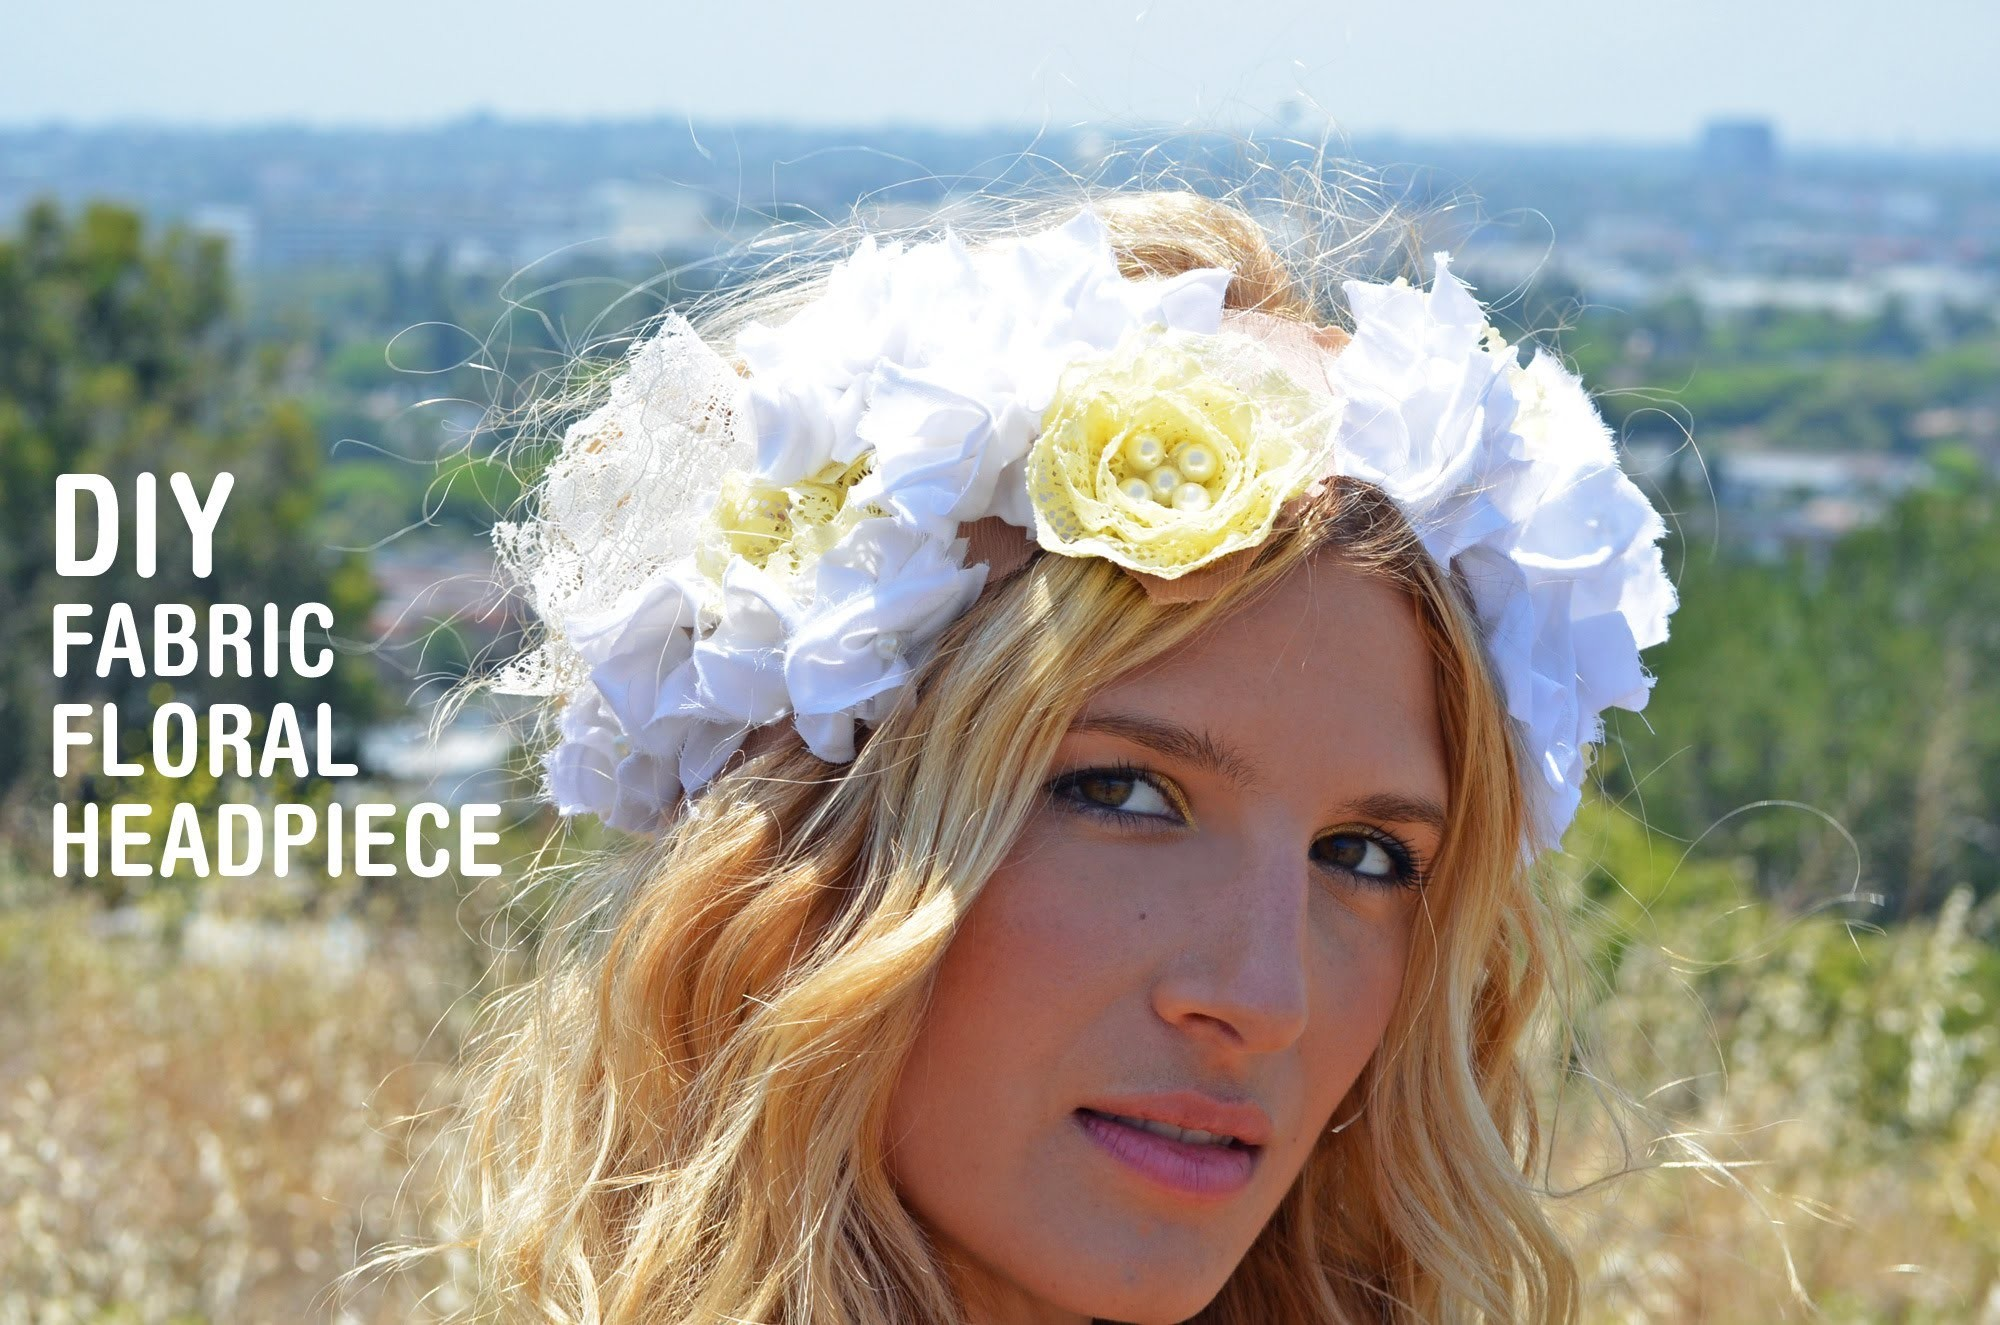 DIY Fabric Floral Headpiece Tutorial by Mr. Kate